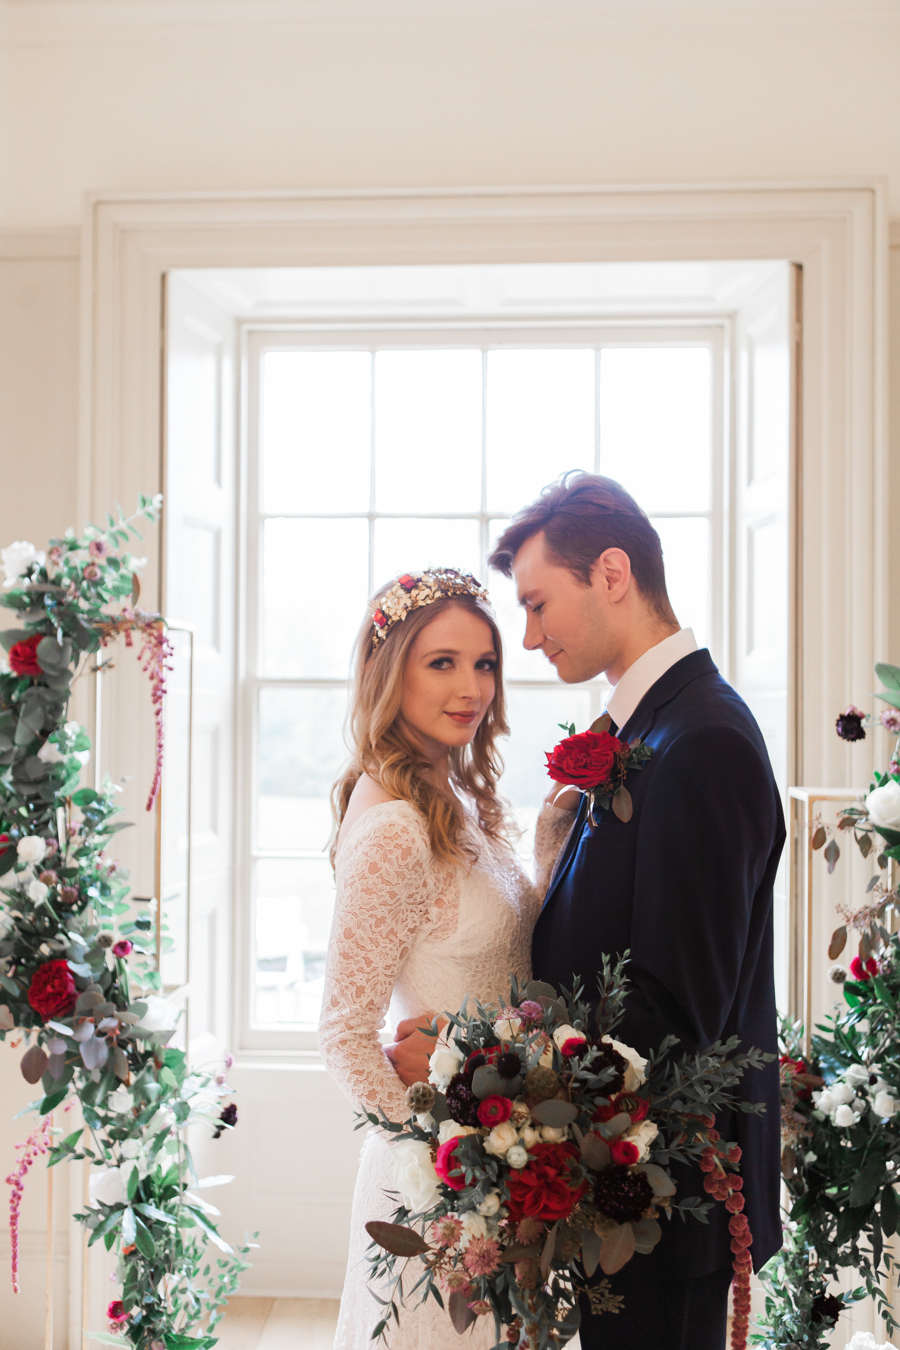 romantic red winter wedding inspiration, image credit Amanda Karen Photography